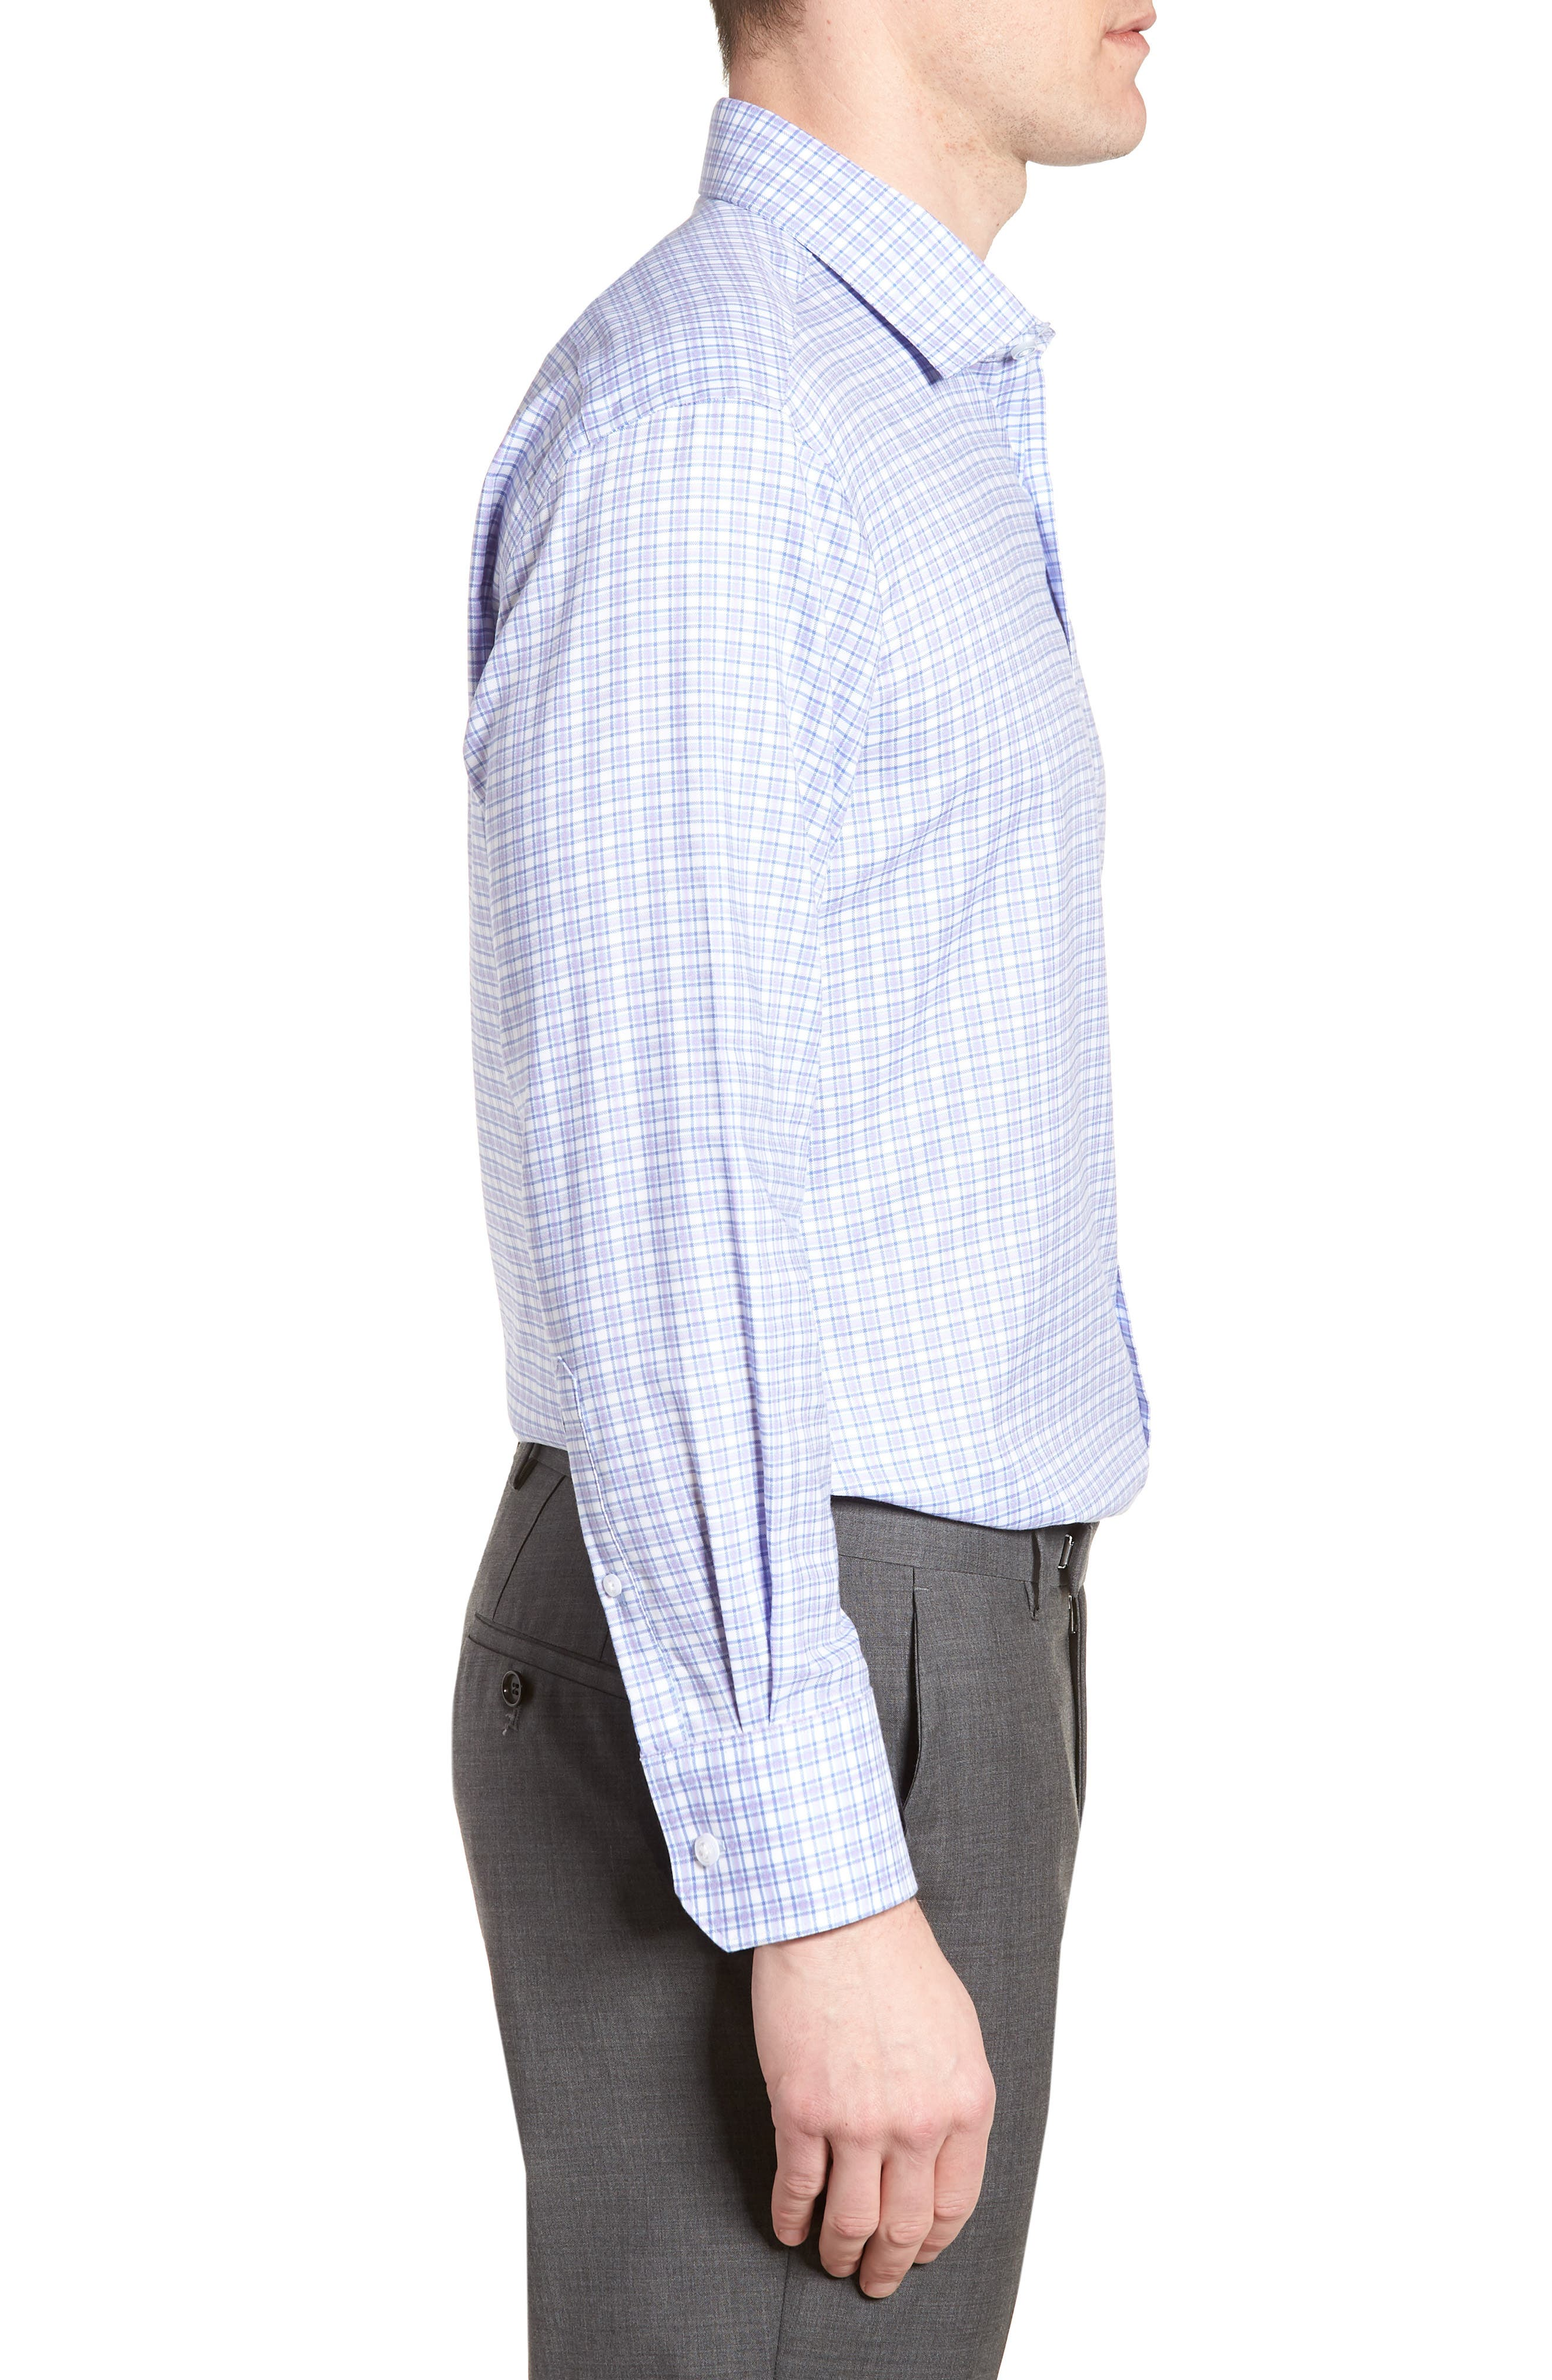 Neil Trim Fit Check Dress Shirt,                             Alternate thumbnail 4, color,                             530